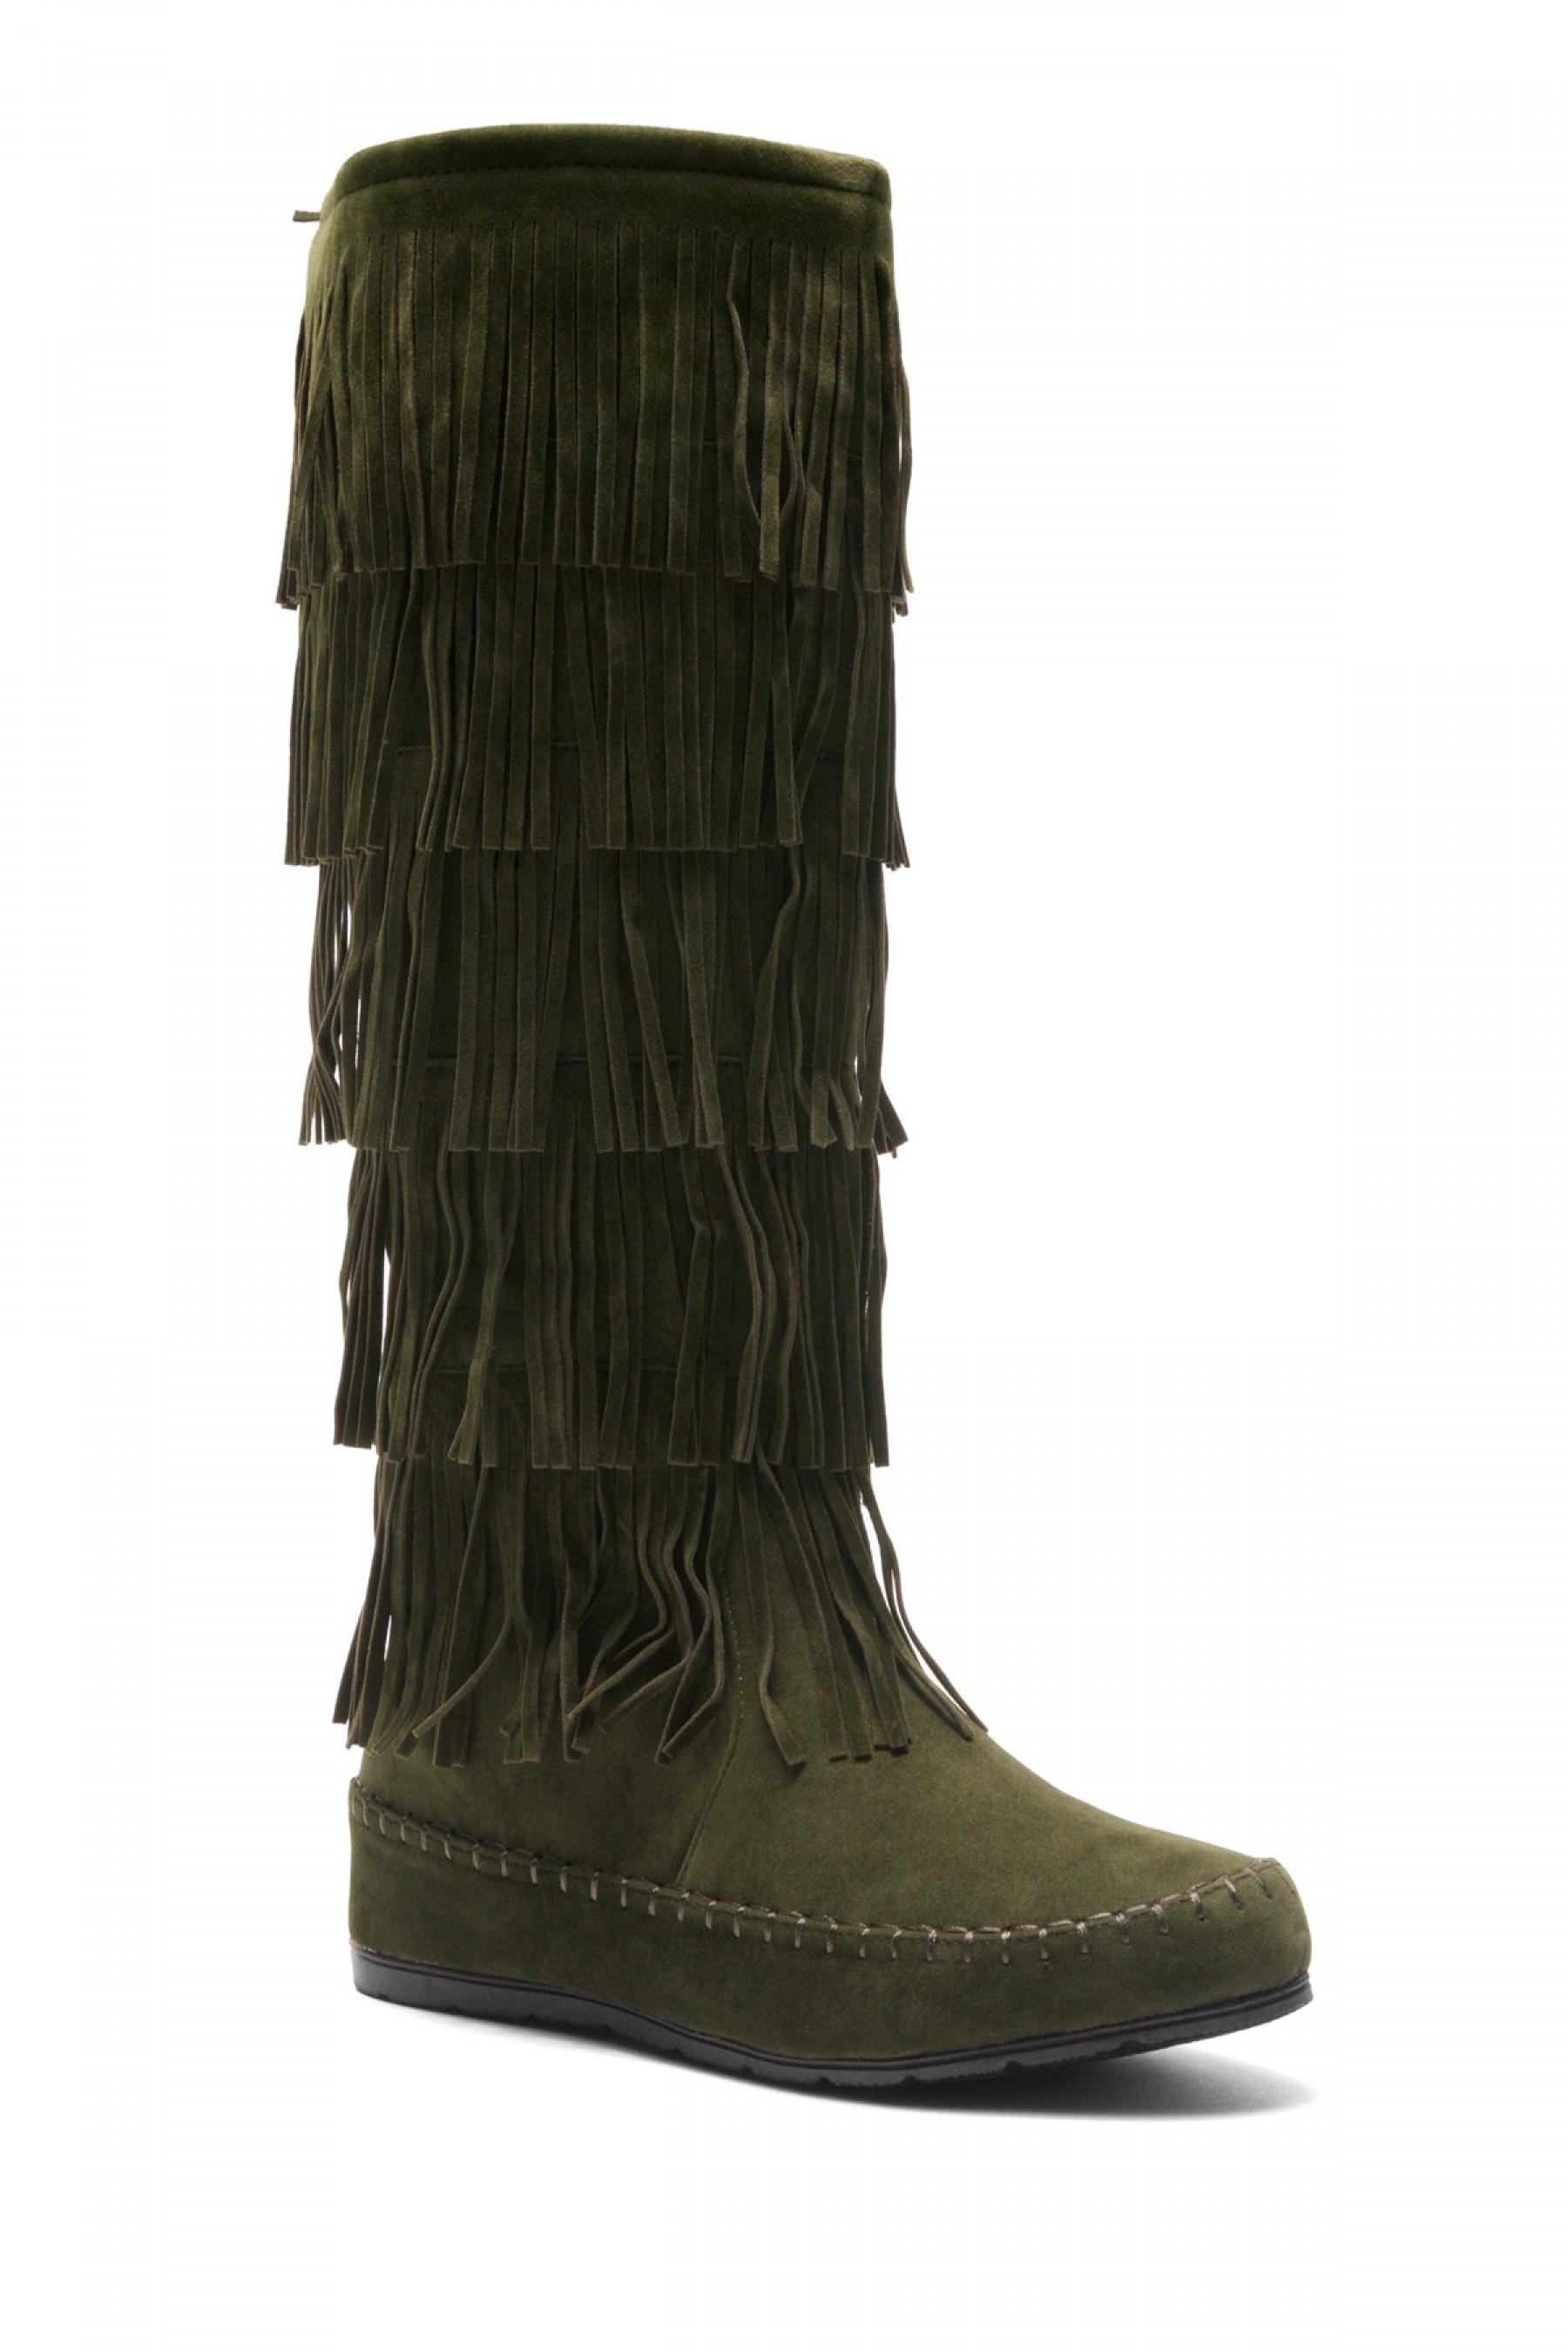 Women's Olive Maddyyee Faux Suede Knee High Fringed five-layer Moccasin Boots